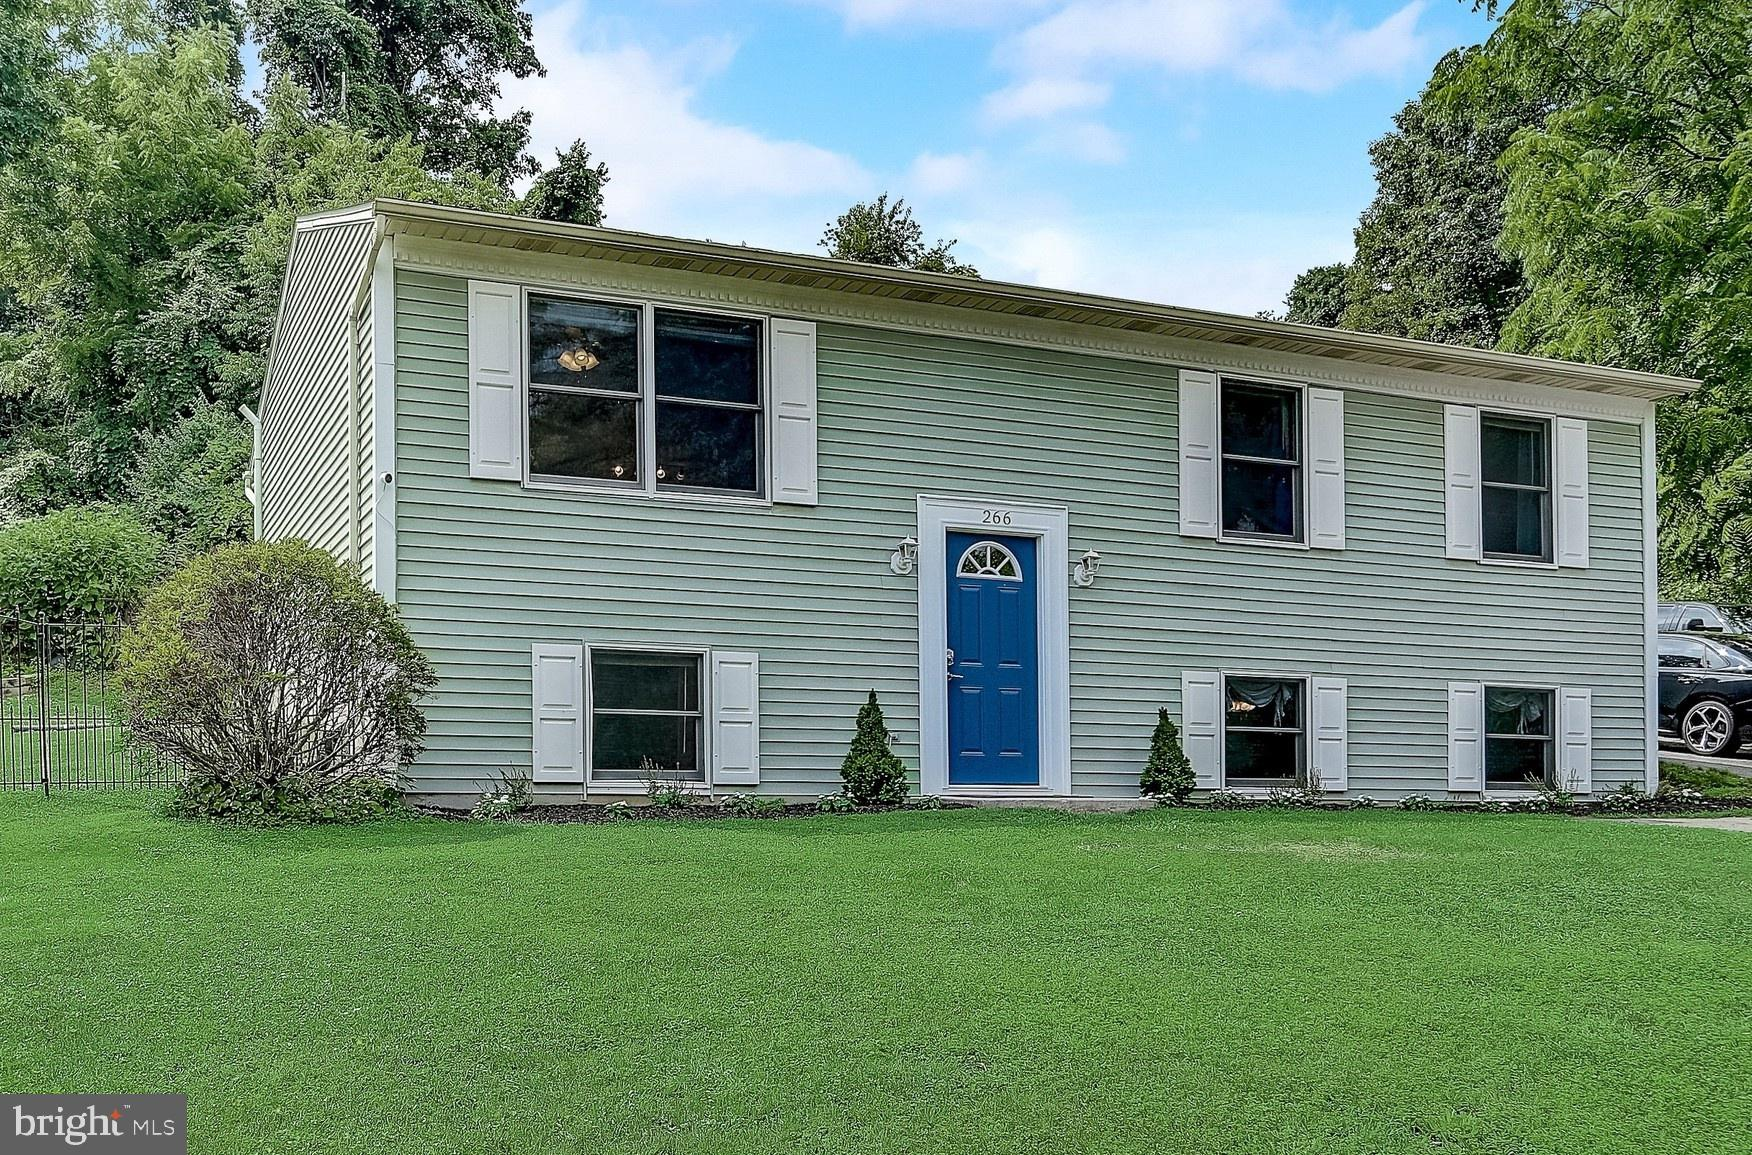 266 N Cranberry Rd, Westminster, MD, 21157